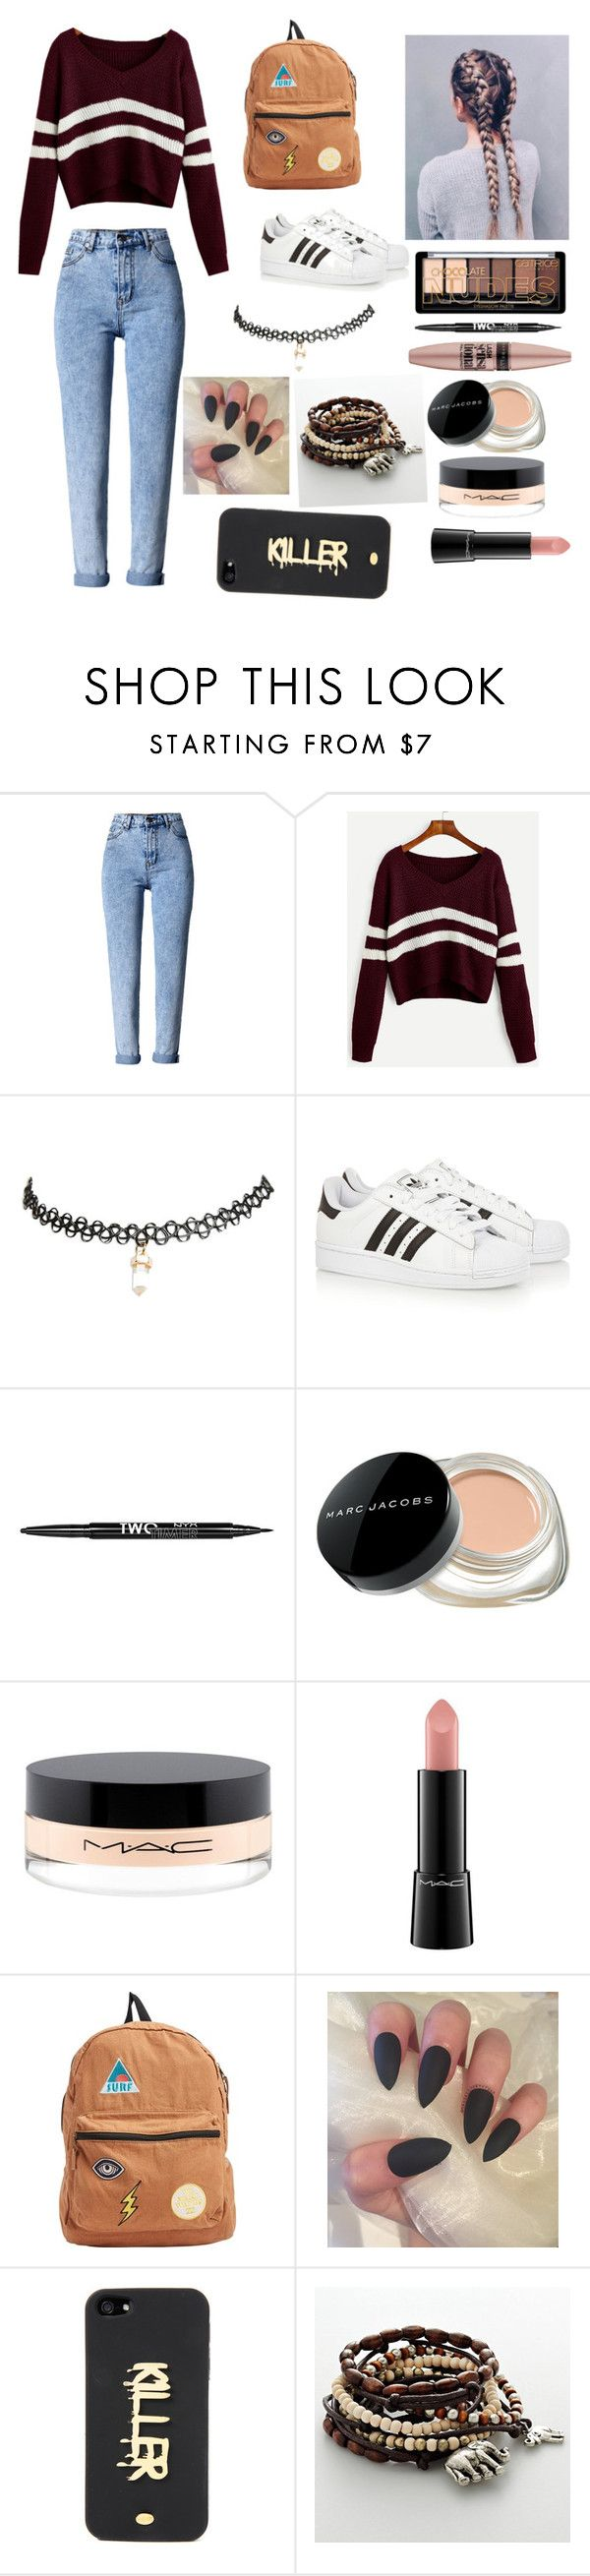 """Outfit for tomorrow"" by lauren-armstrong108 ❤ liked on Polyvore featuring WithChic, Wet Seal, adidas Originals, Charlotte Russe, Maybelline, Marc Jacobs, MAC Cosmetics, Billabong, Noir and Mudd"